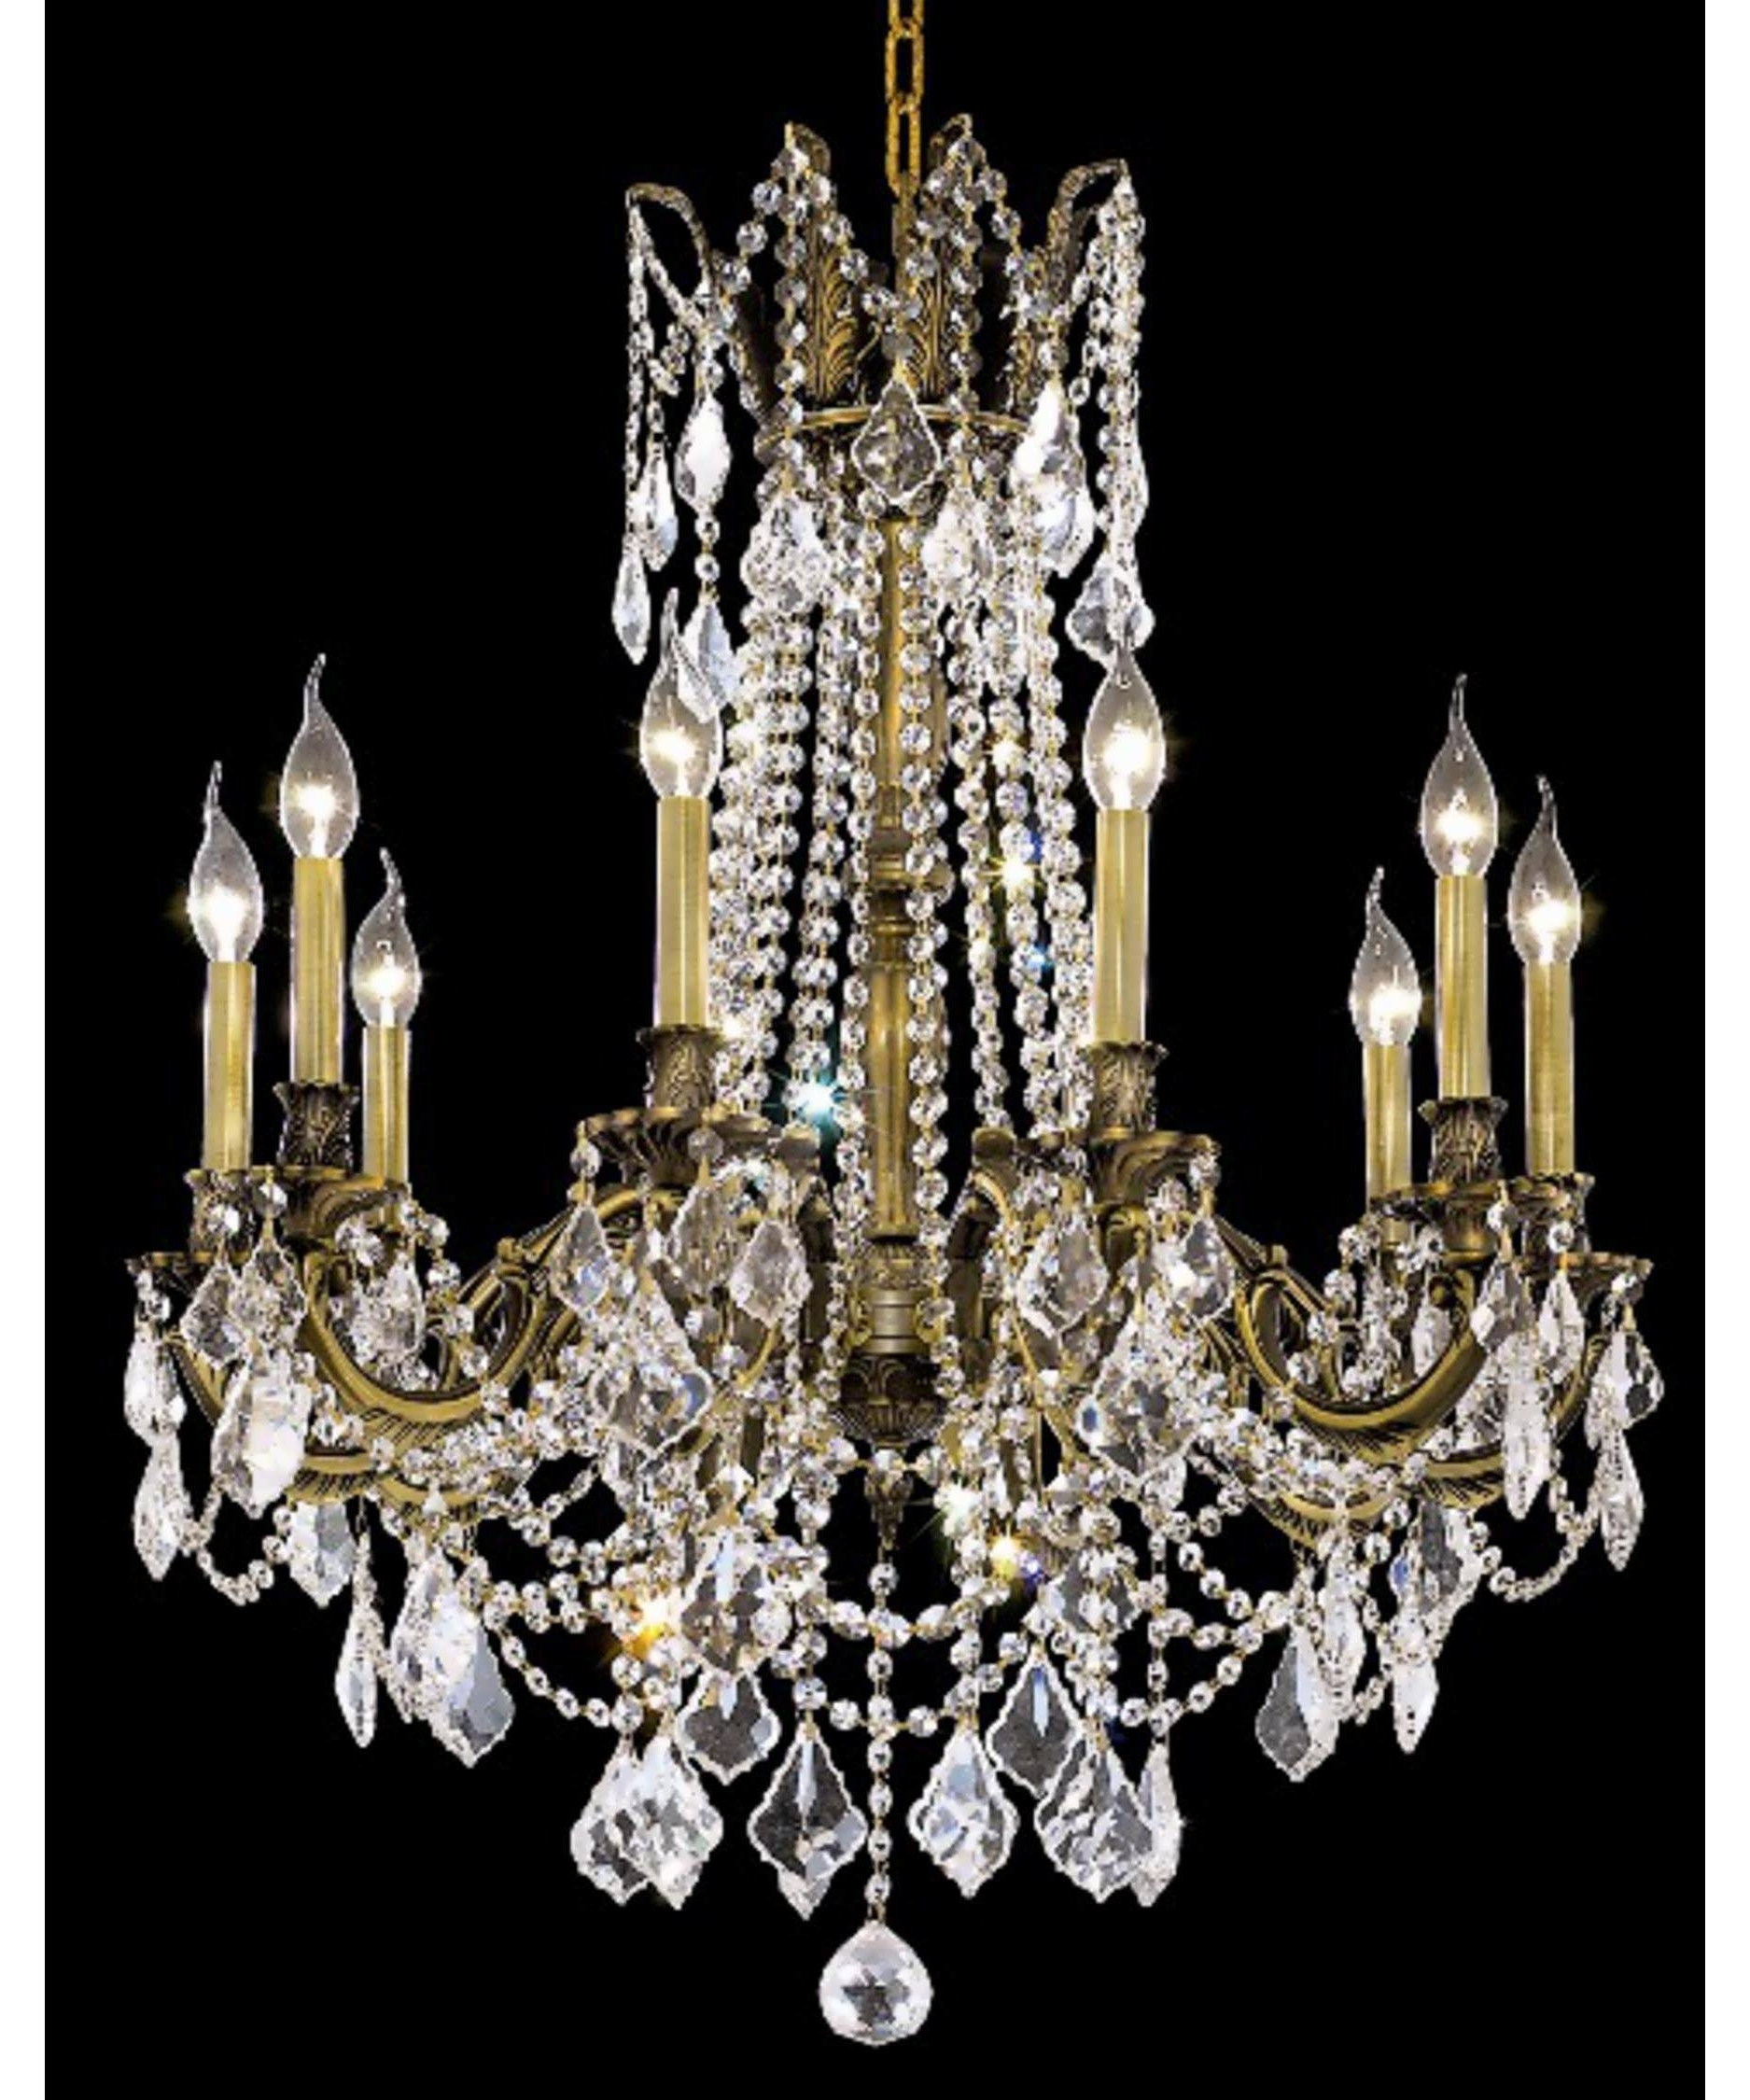 Traditional Crystal Chandeliers Within Latest Chandelier : Traditional Crystal Chandeliers Wood Chandelier Light (View 11 of 15)